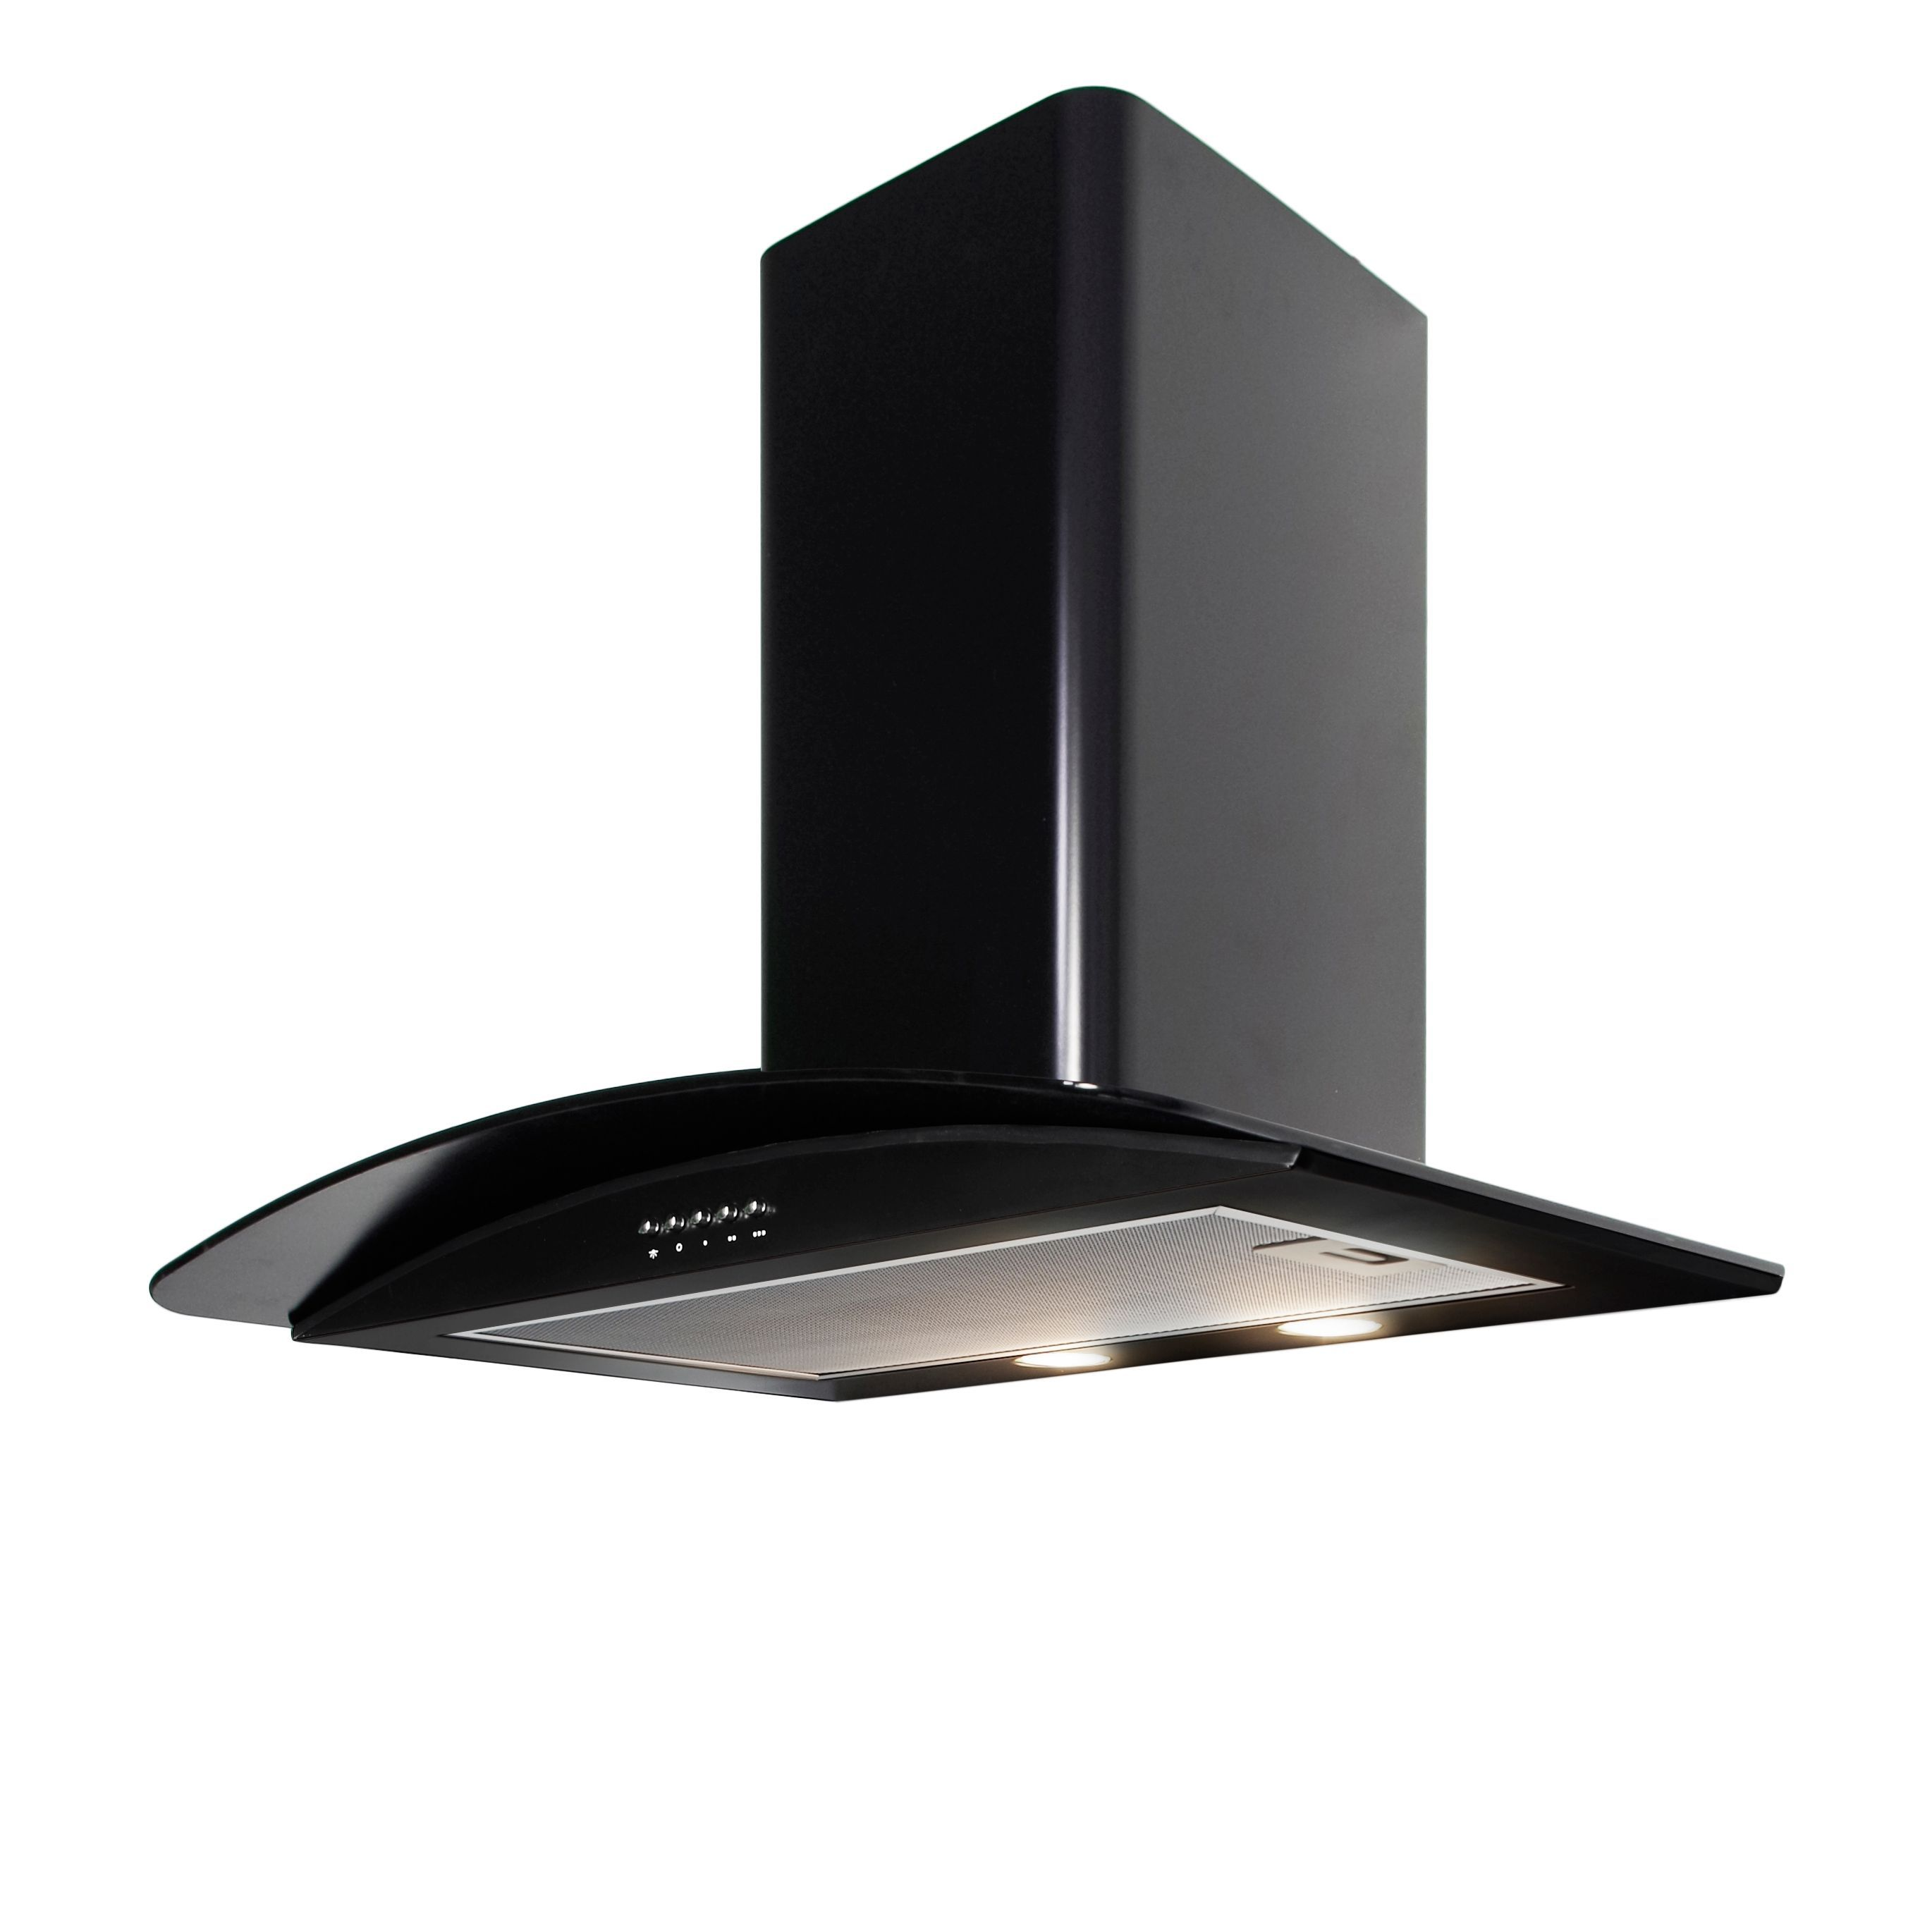 Cooke & Lewis Clgch70bk Steel & Glass Curved Cooker Hood, (w) 700mm